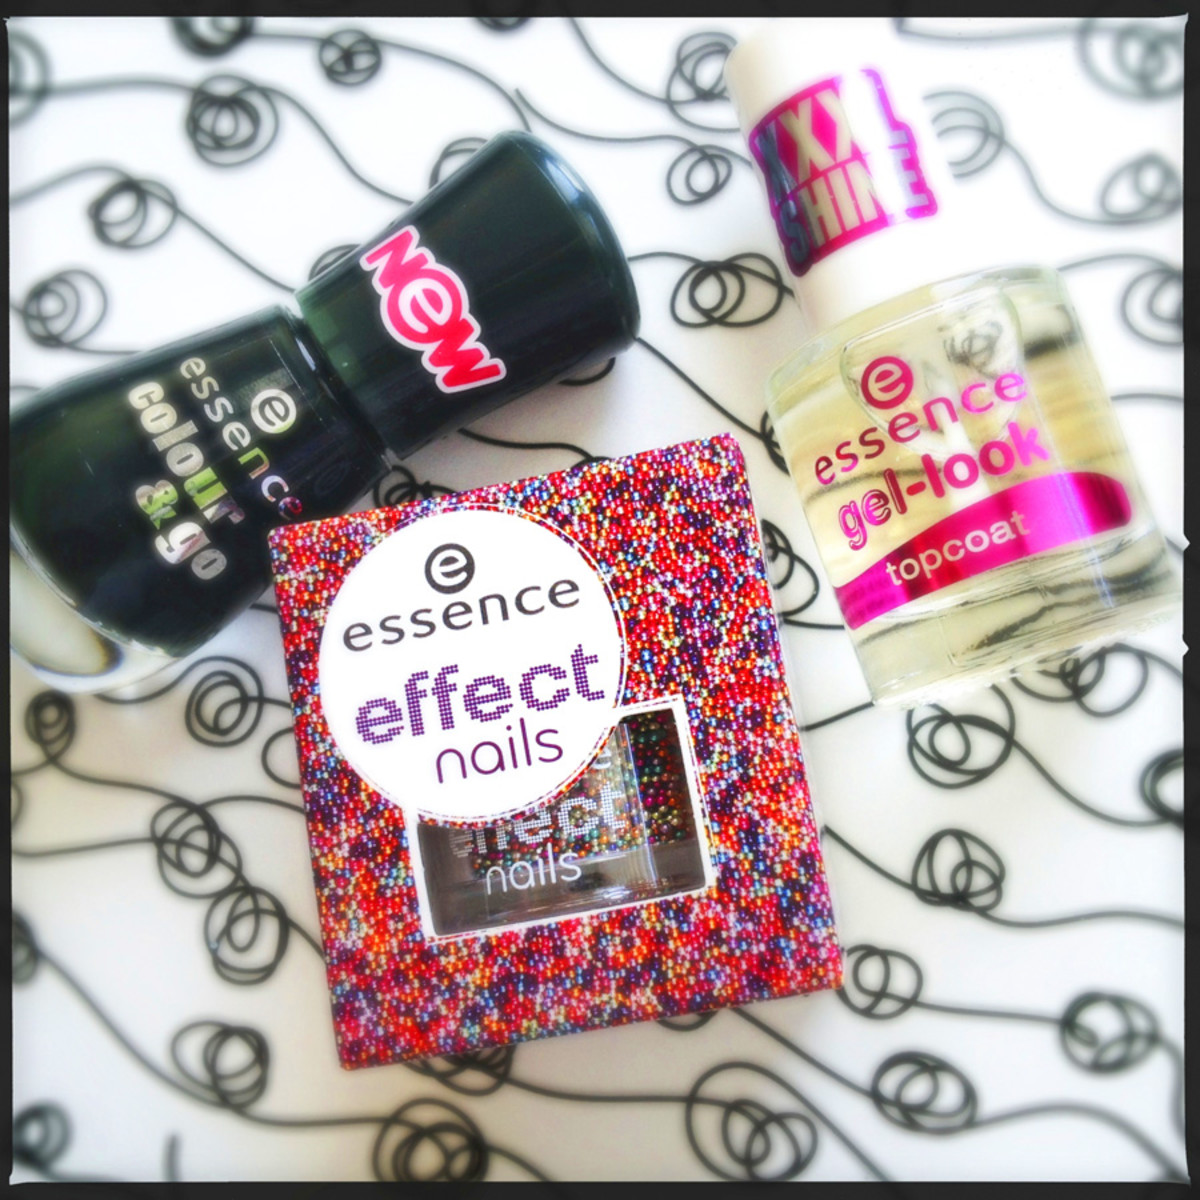 Essence Color & Go Deep Sea, Baby, Essence Effect Nails, Essence Gel-Look Top Coat